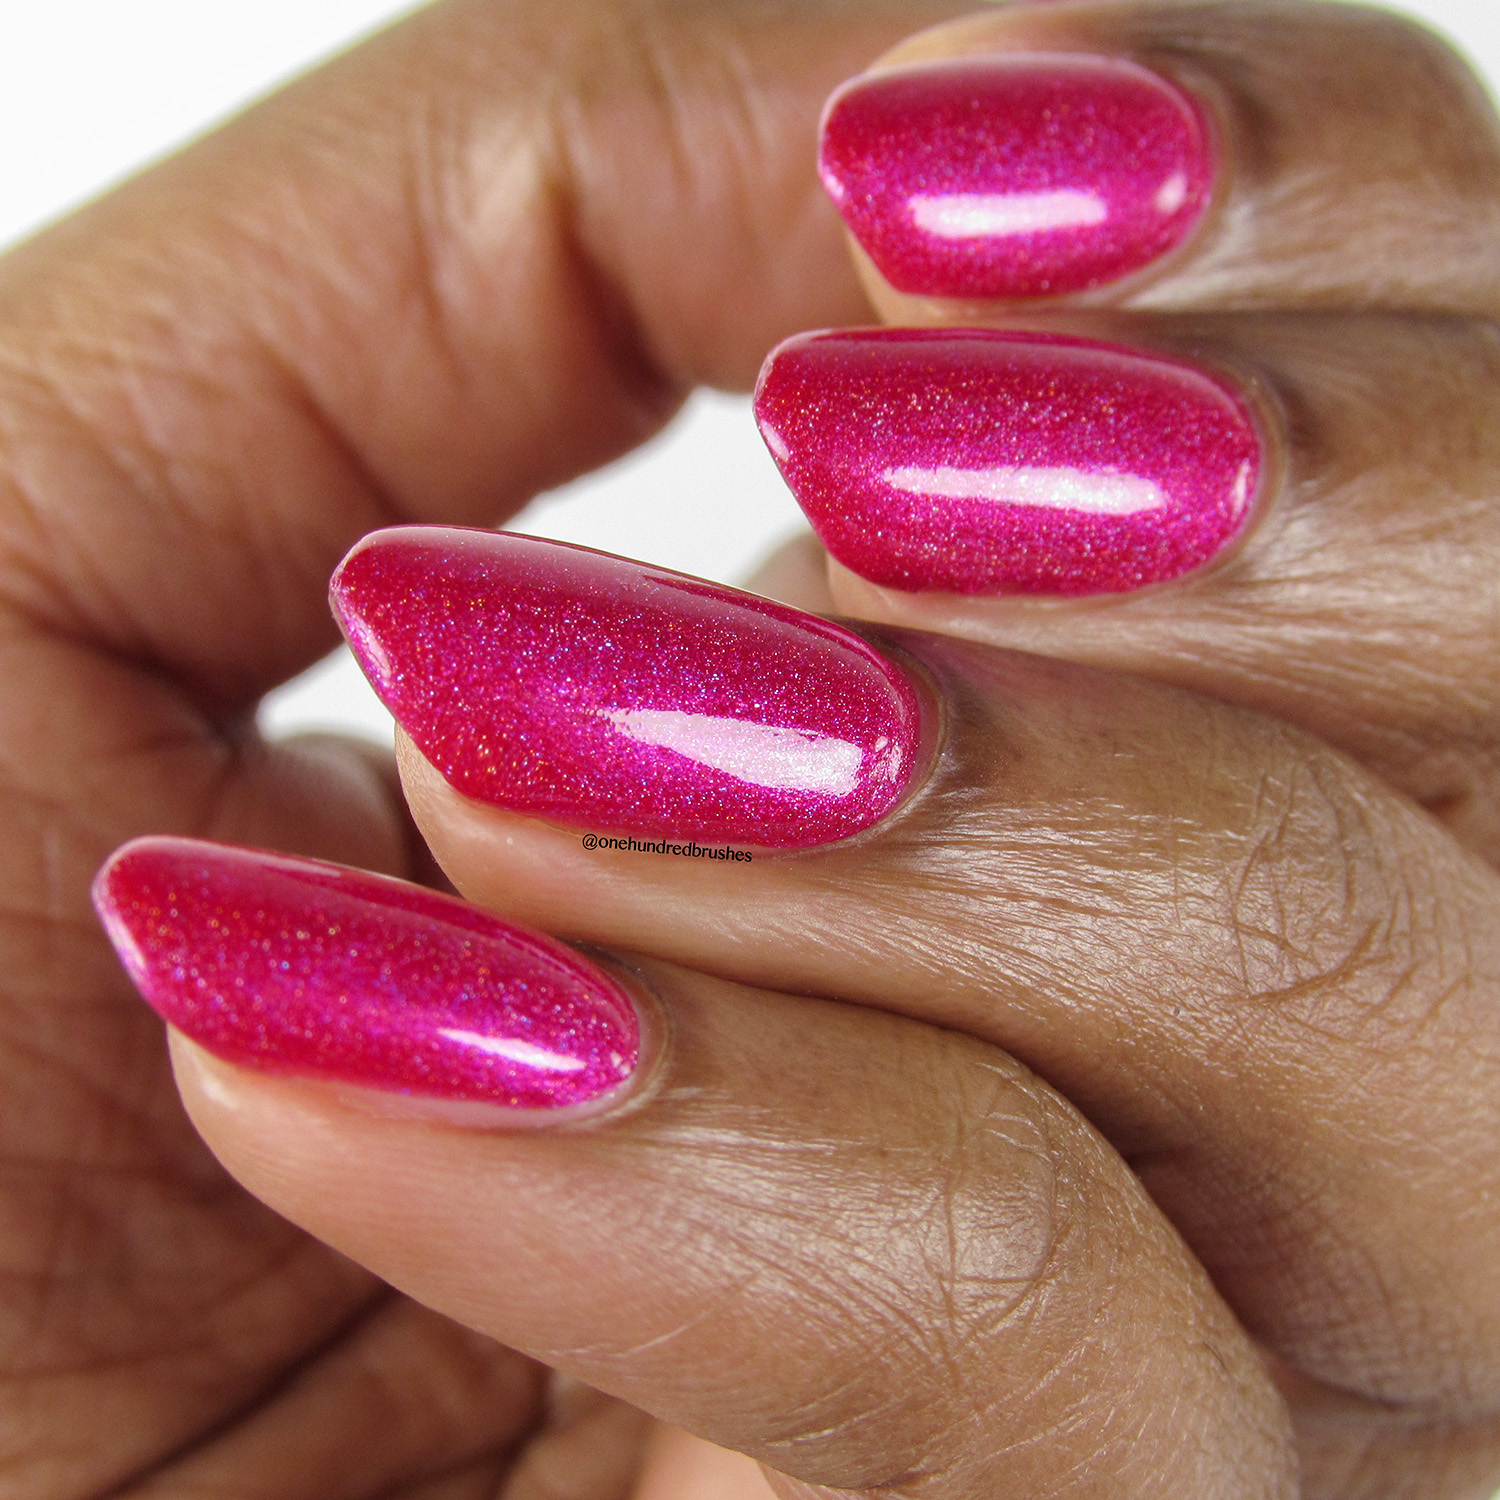 Tantrum - angle - Vapid Lacquer - April 2018 - Spring release - fuschia pink - linear holographic